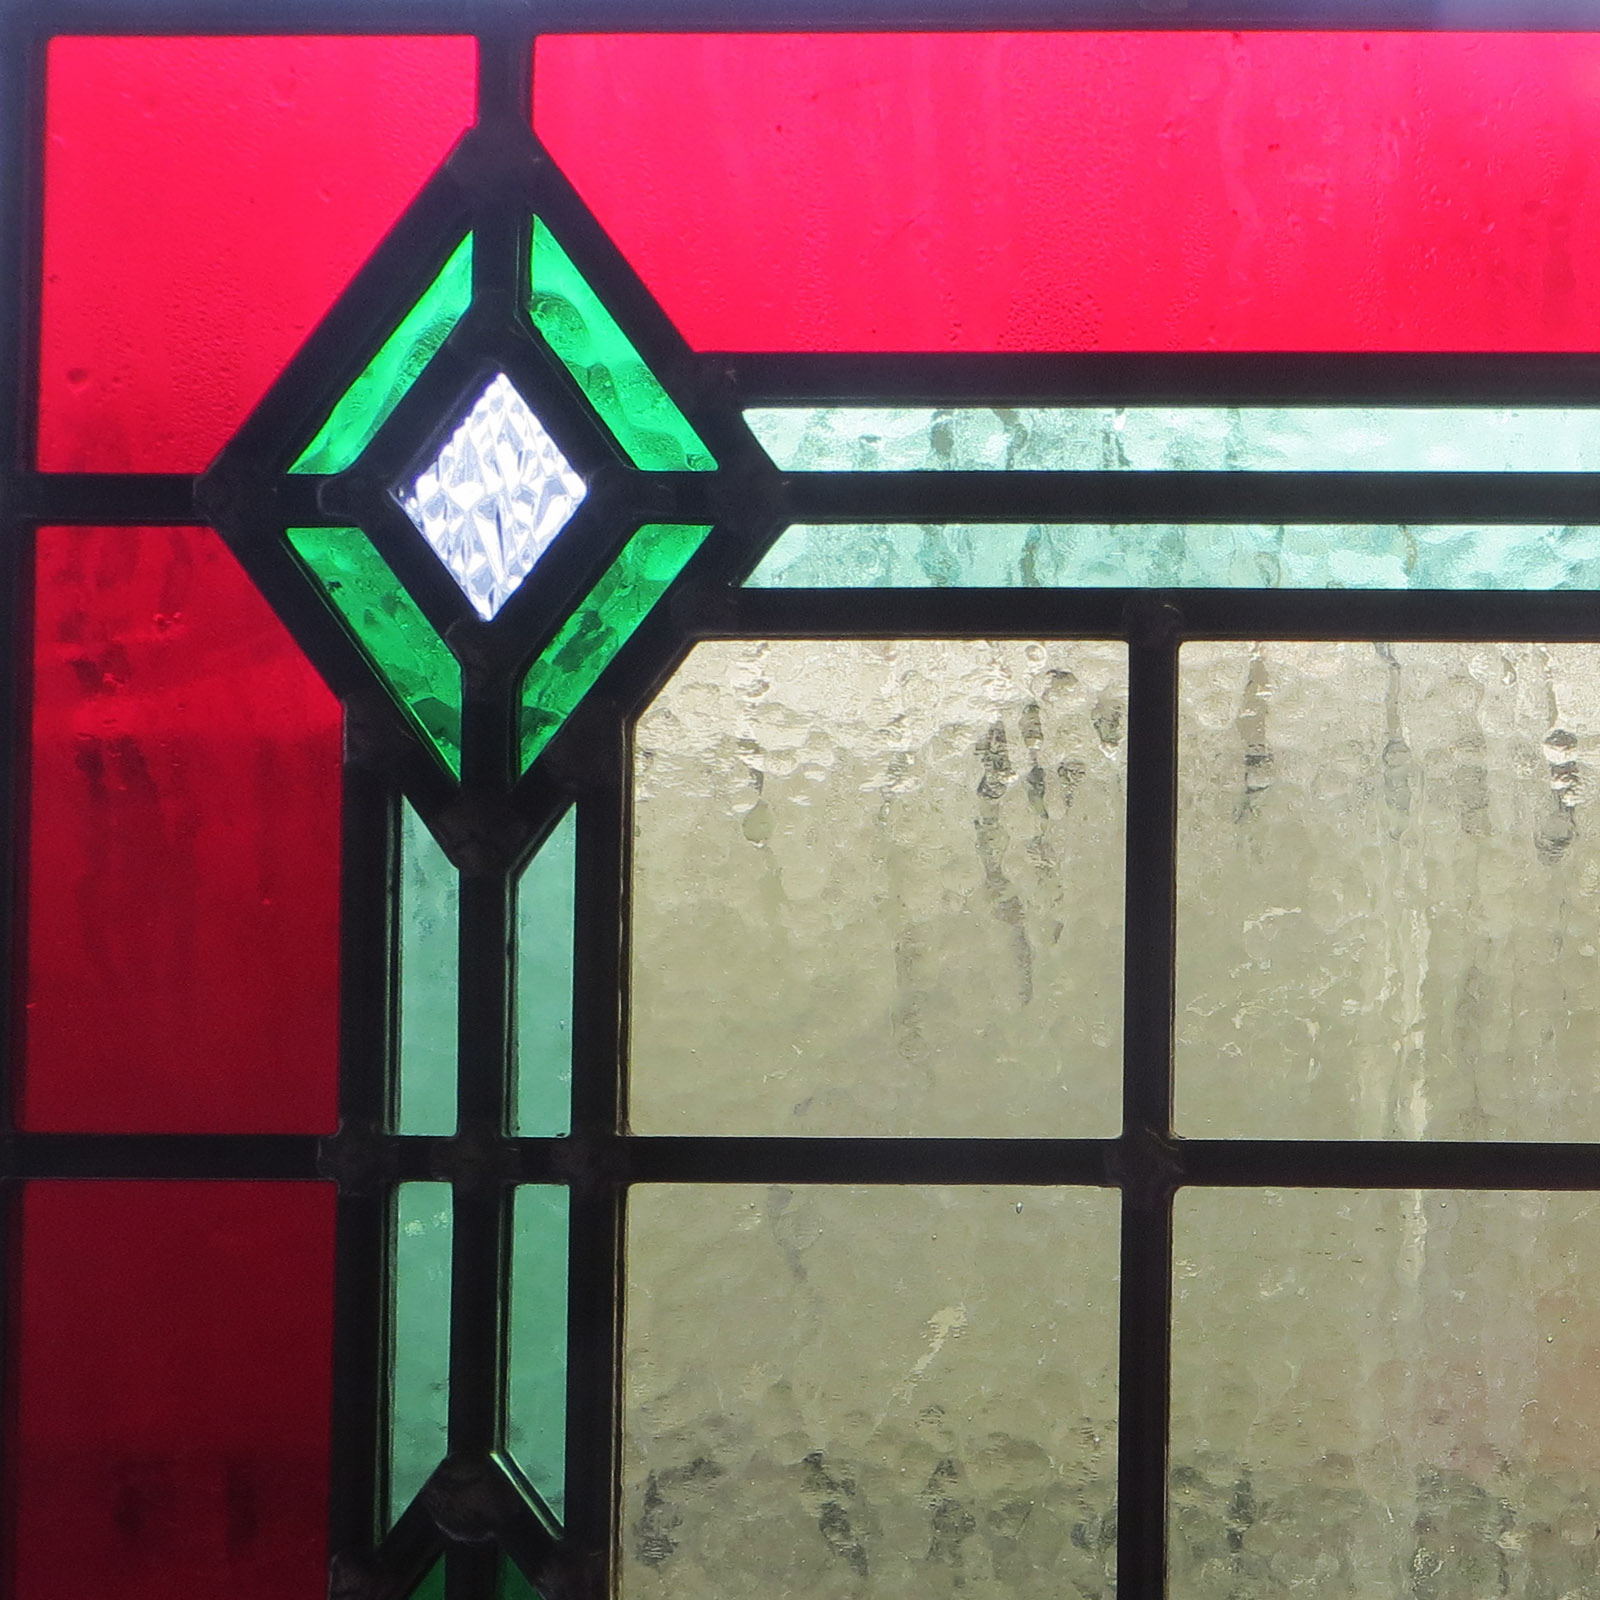 Bespoke 1930s Art Deco Stained Glass From Period Home Style